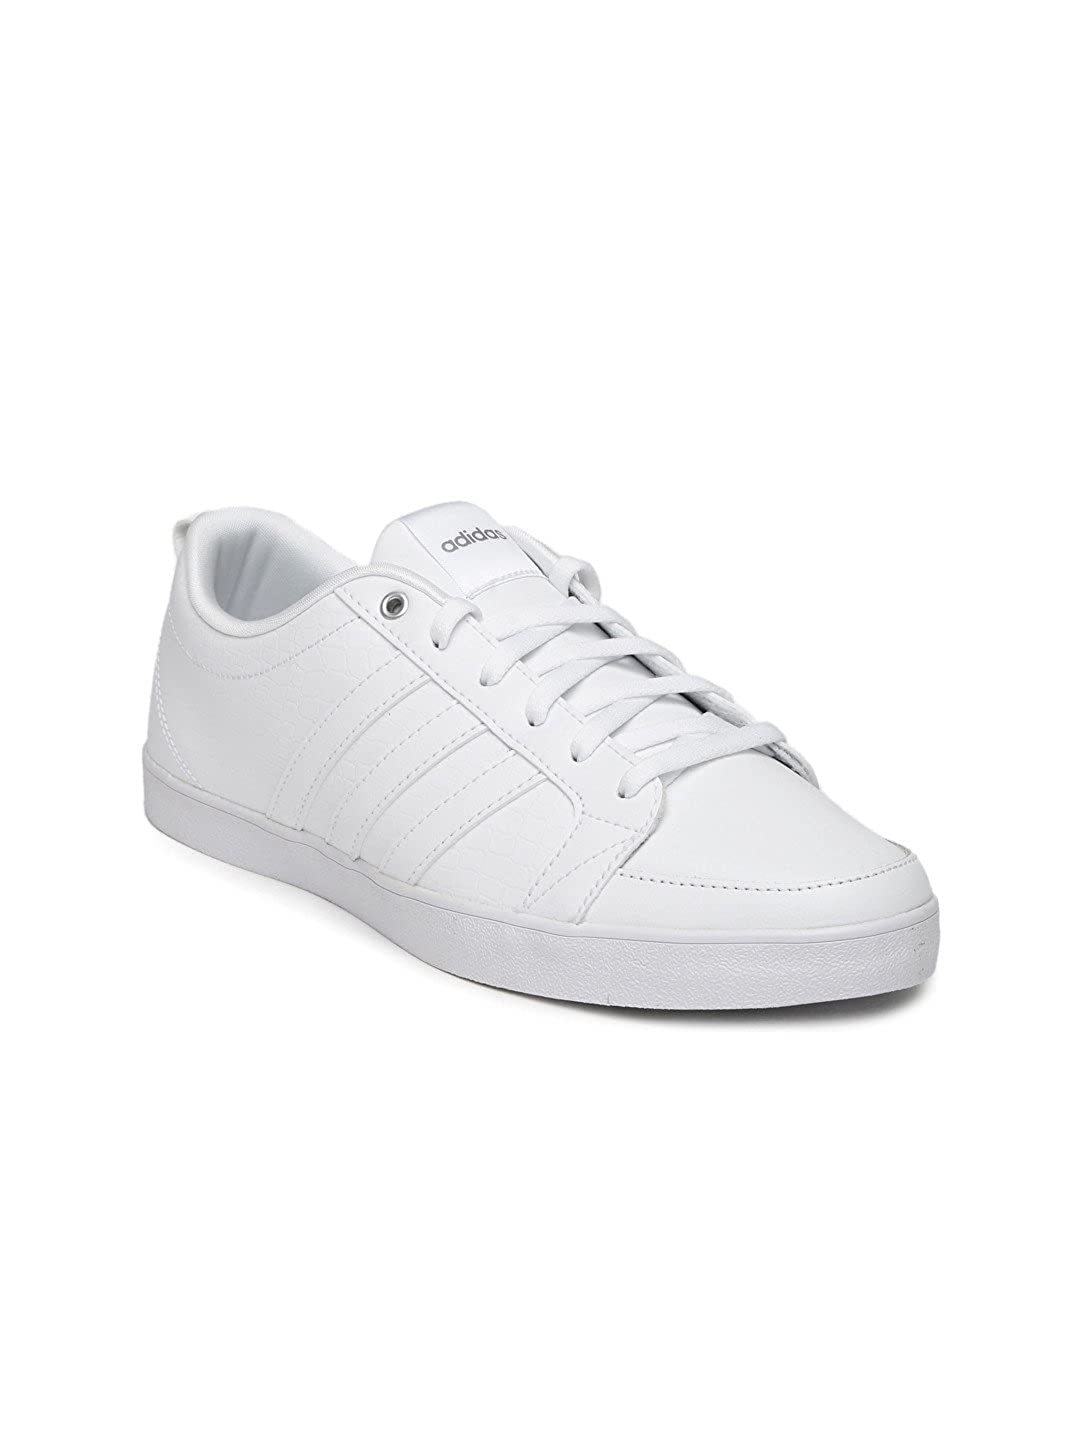 Discounted Adidas NEO Black DAILY QT LX Textured Sneakers